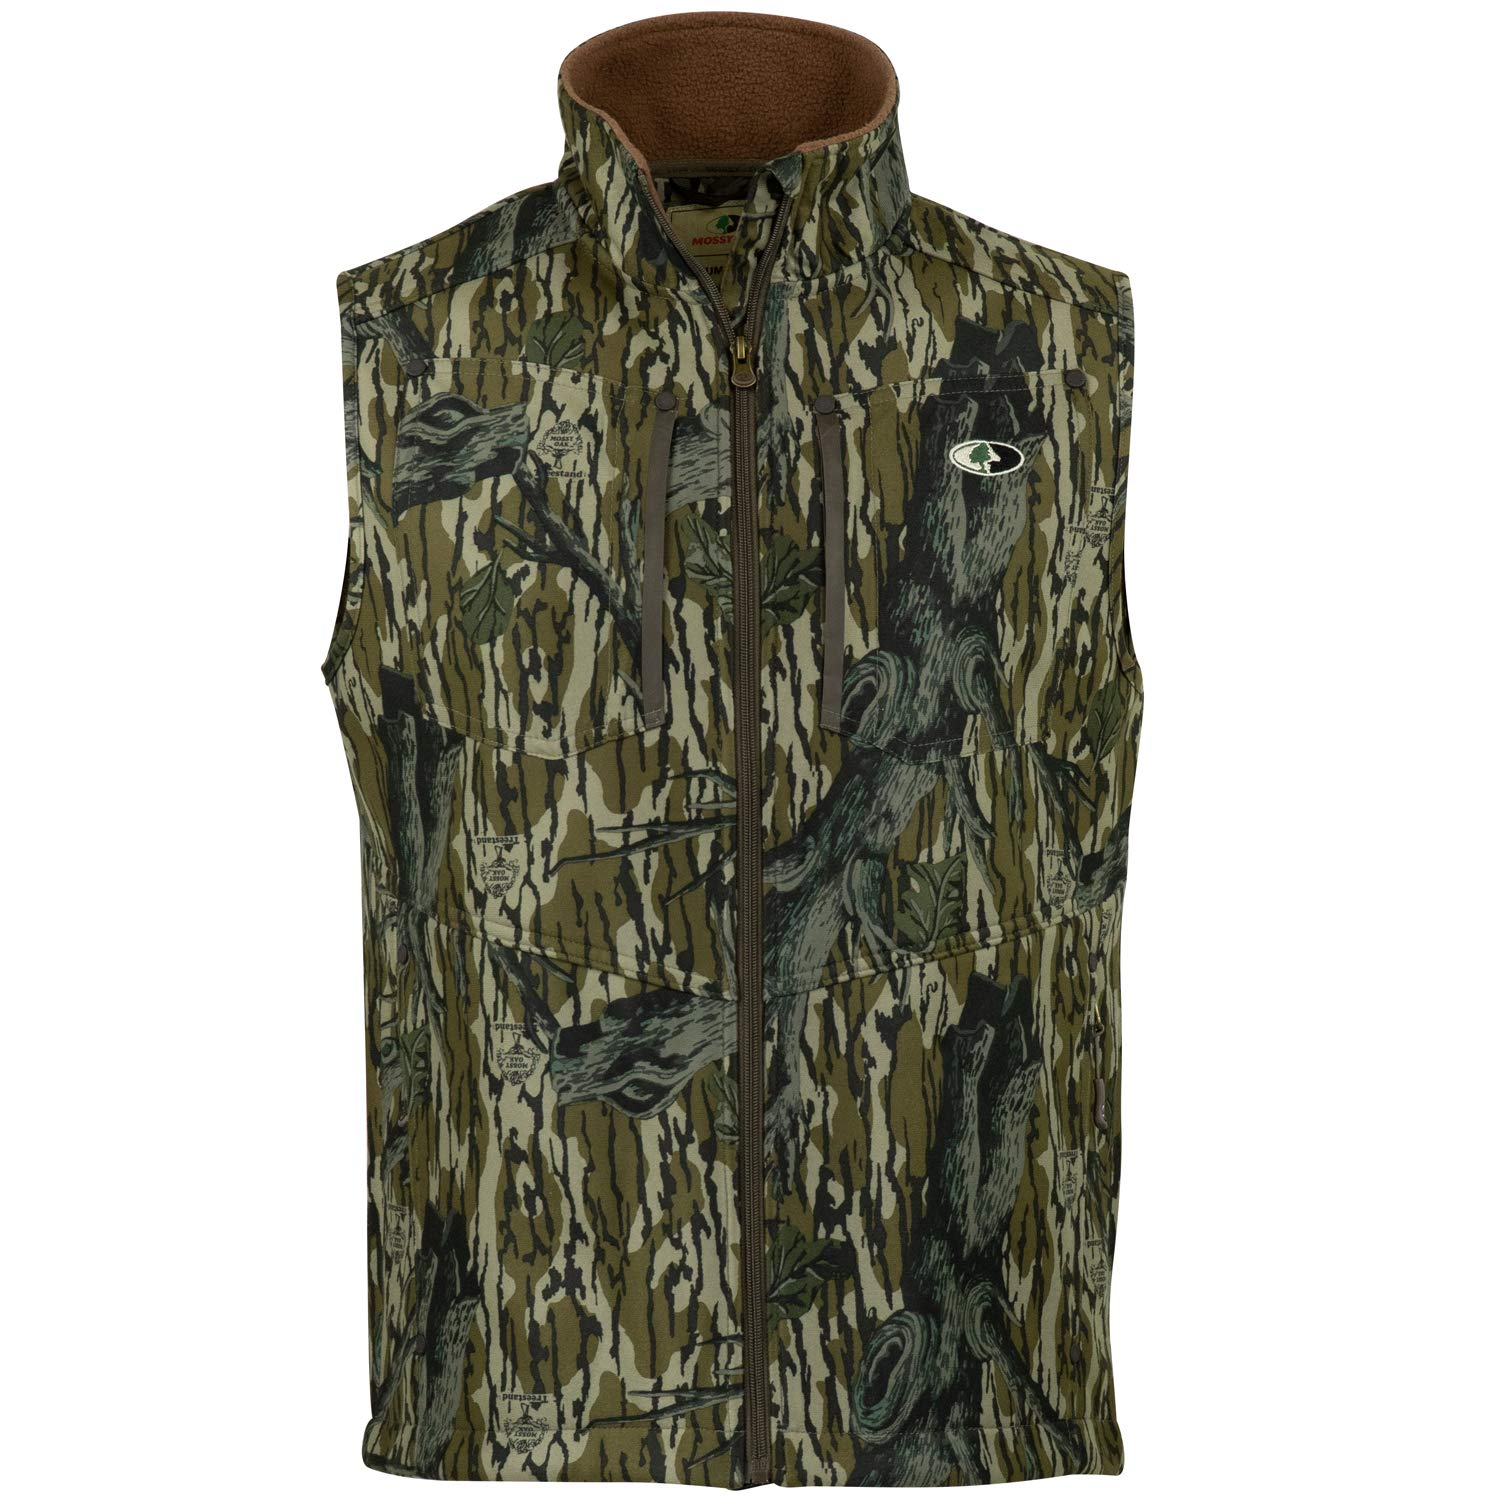 Mossy Oak Men's Camo Sherpa 2.0 Fleece Lined Hunting Vest, Original Treestand, Large by Mossy Oak